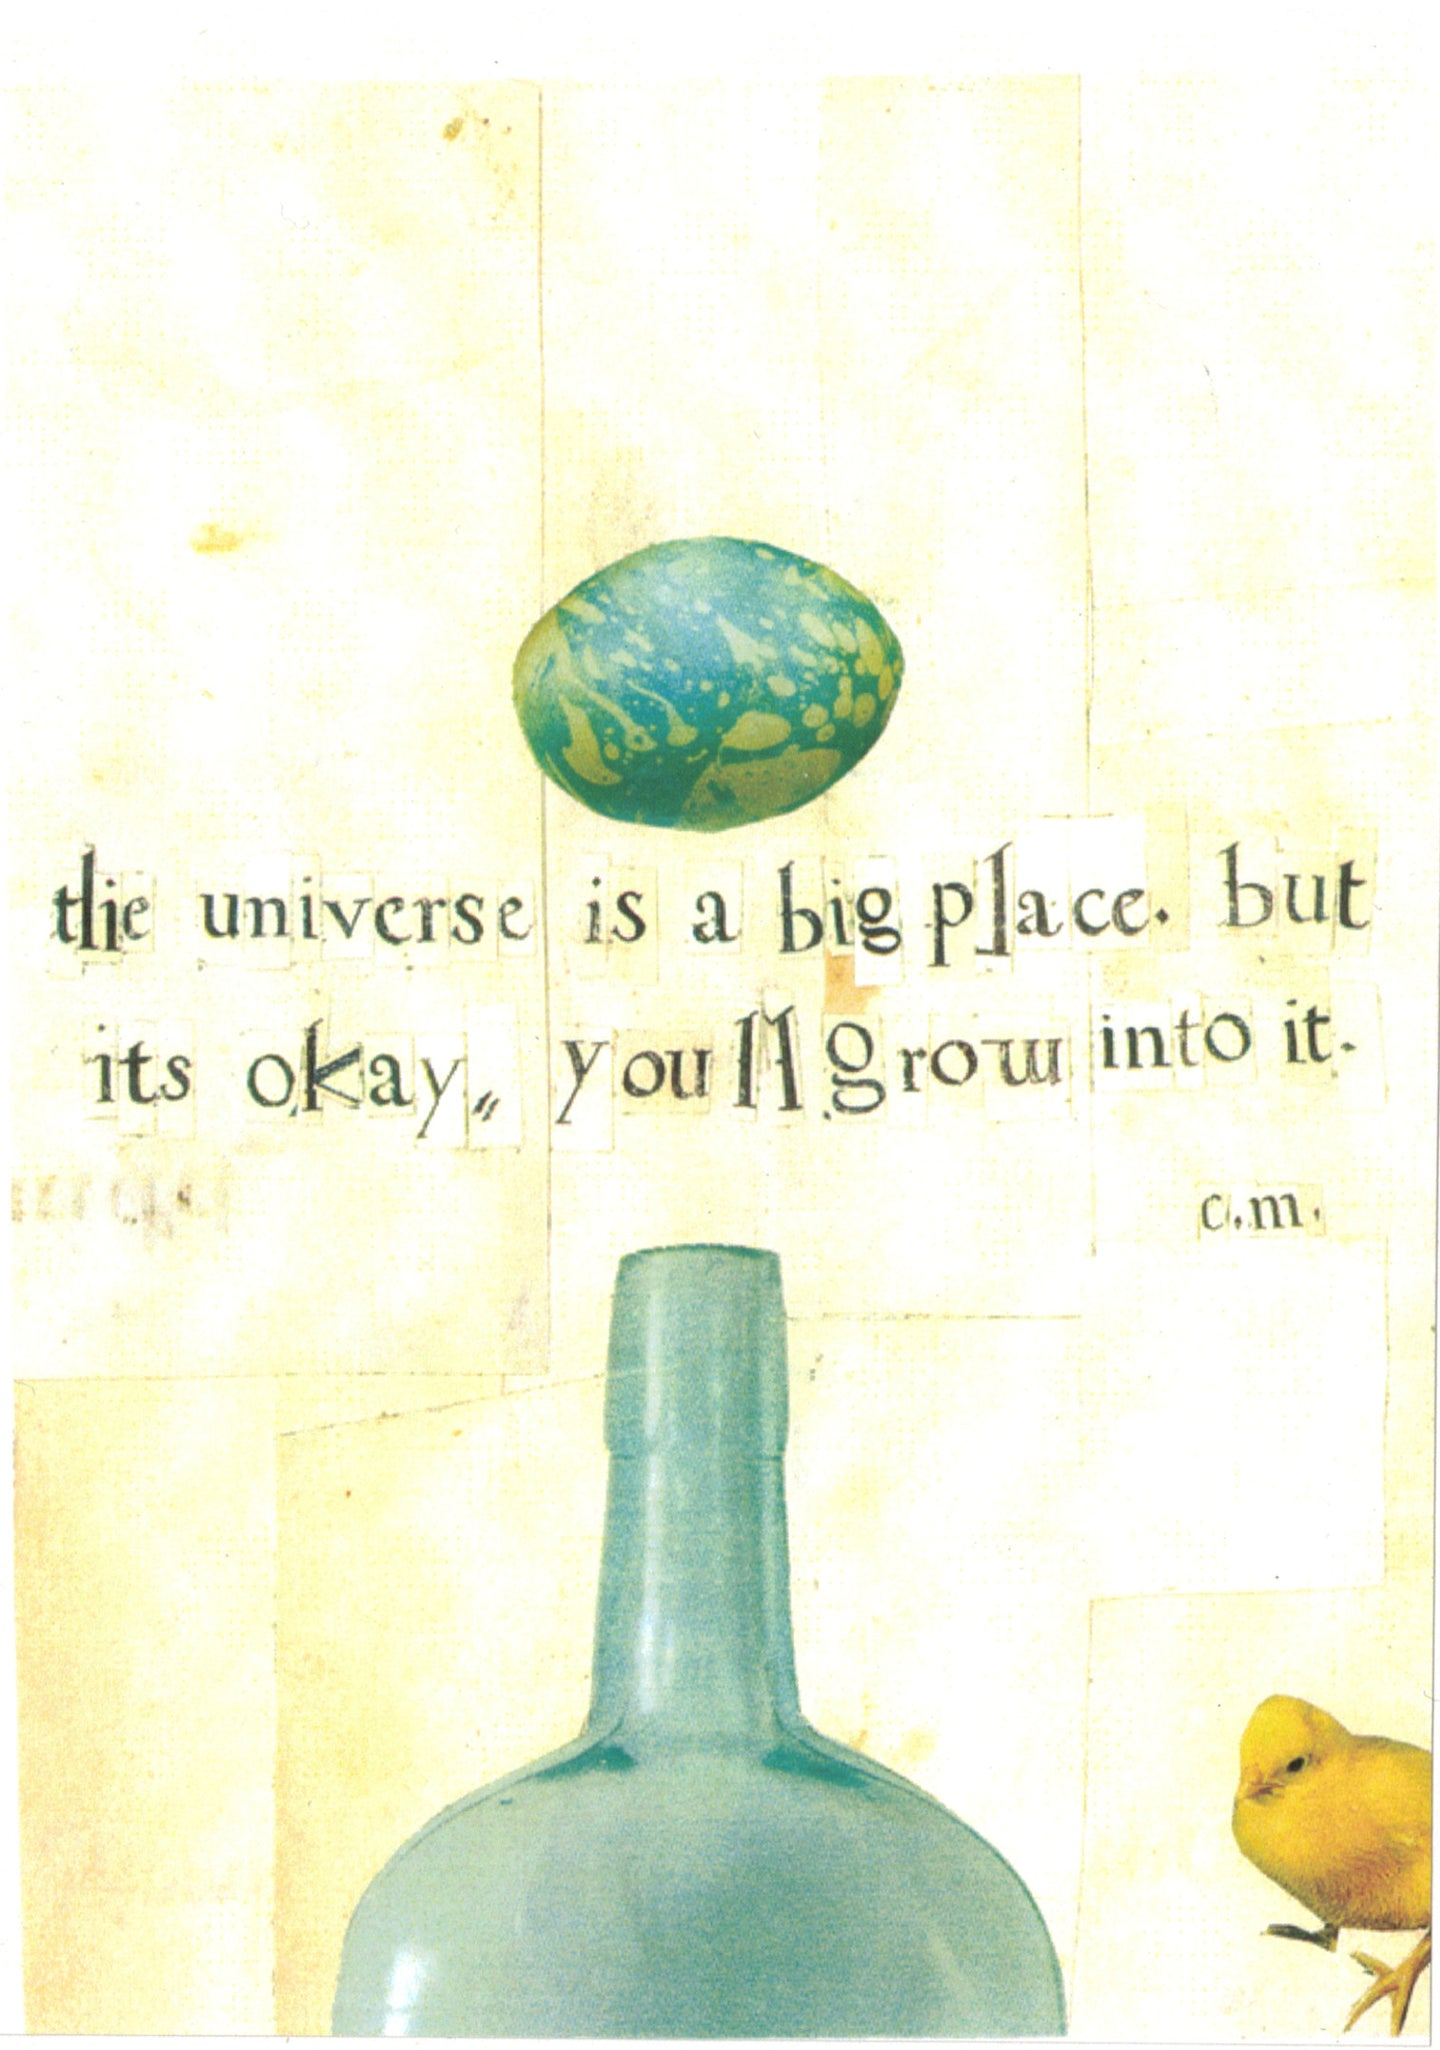 The universe is a big place